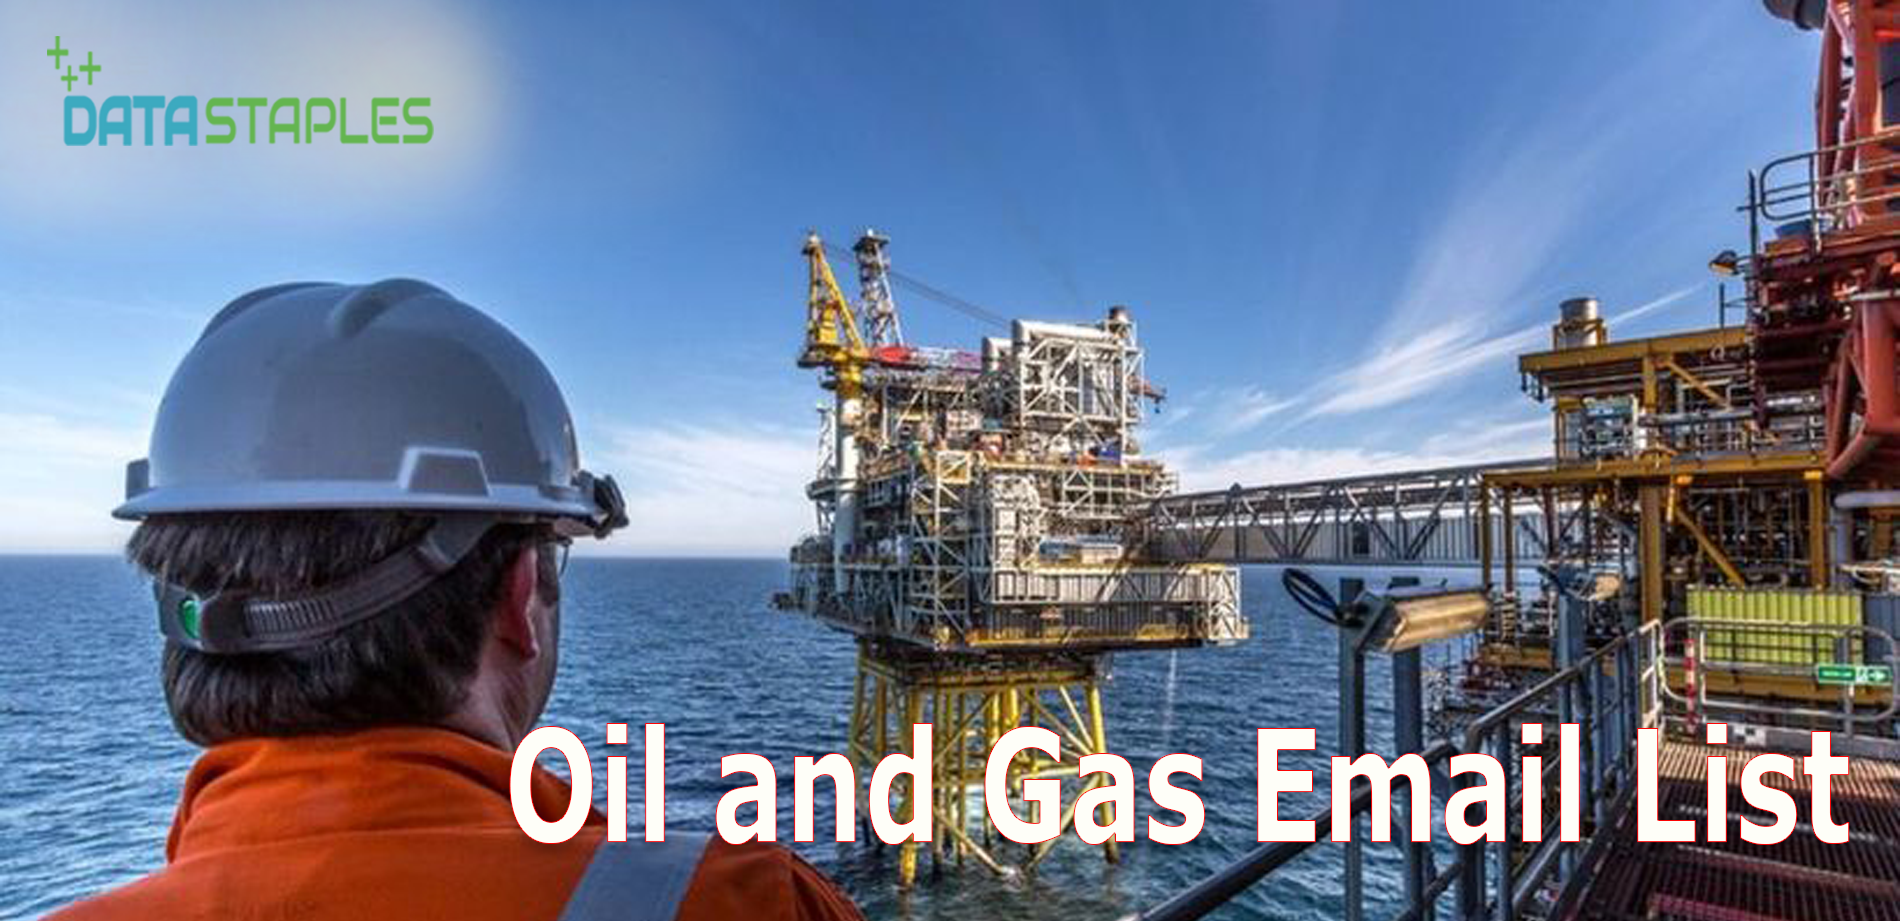 Oil and Gas Email List | DataStaples